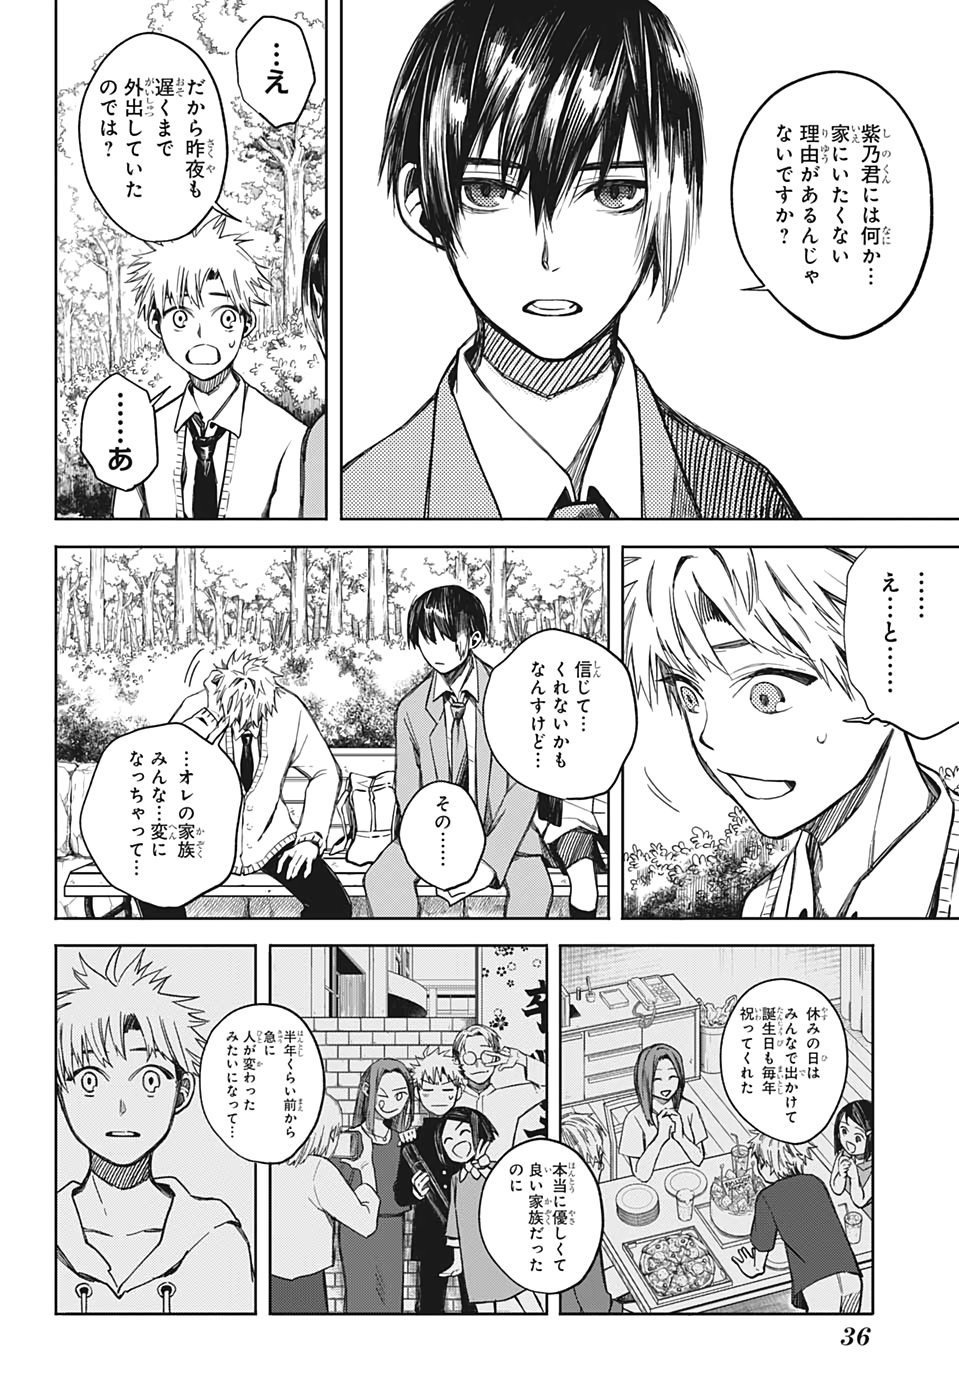 Manga Raw Bokura no Ketsumei Chapter 01